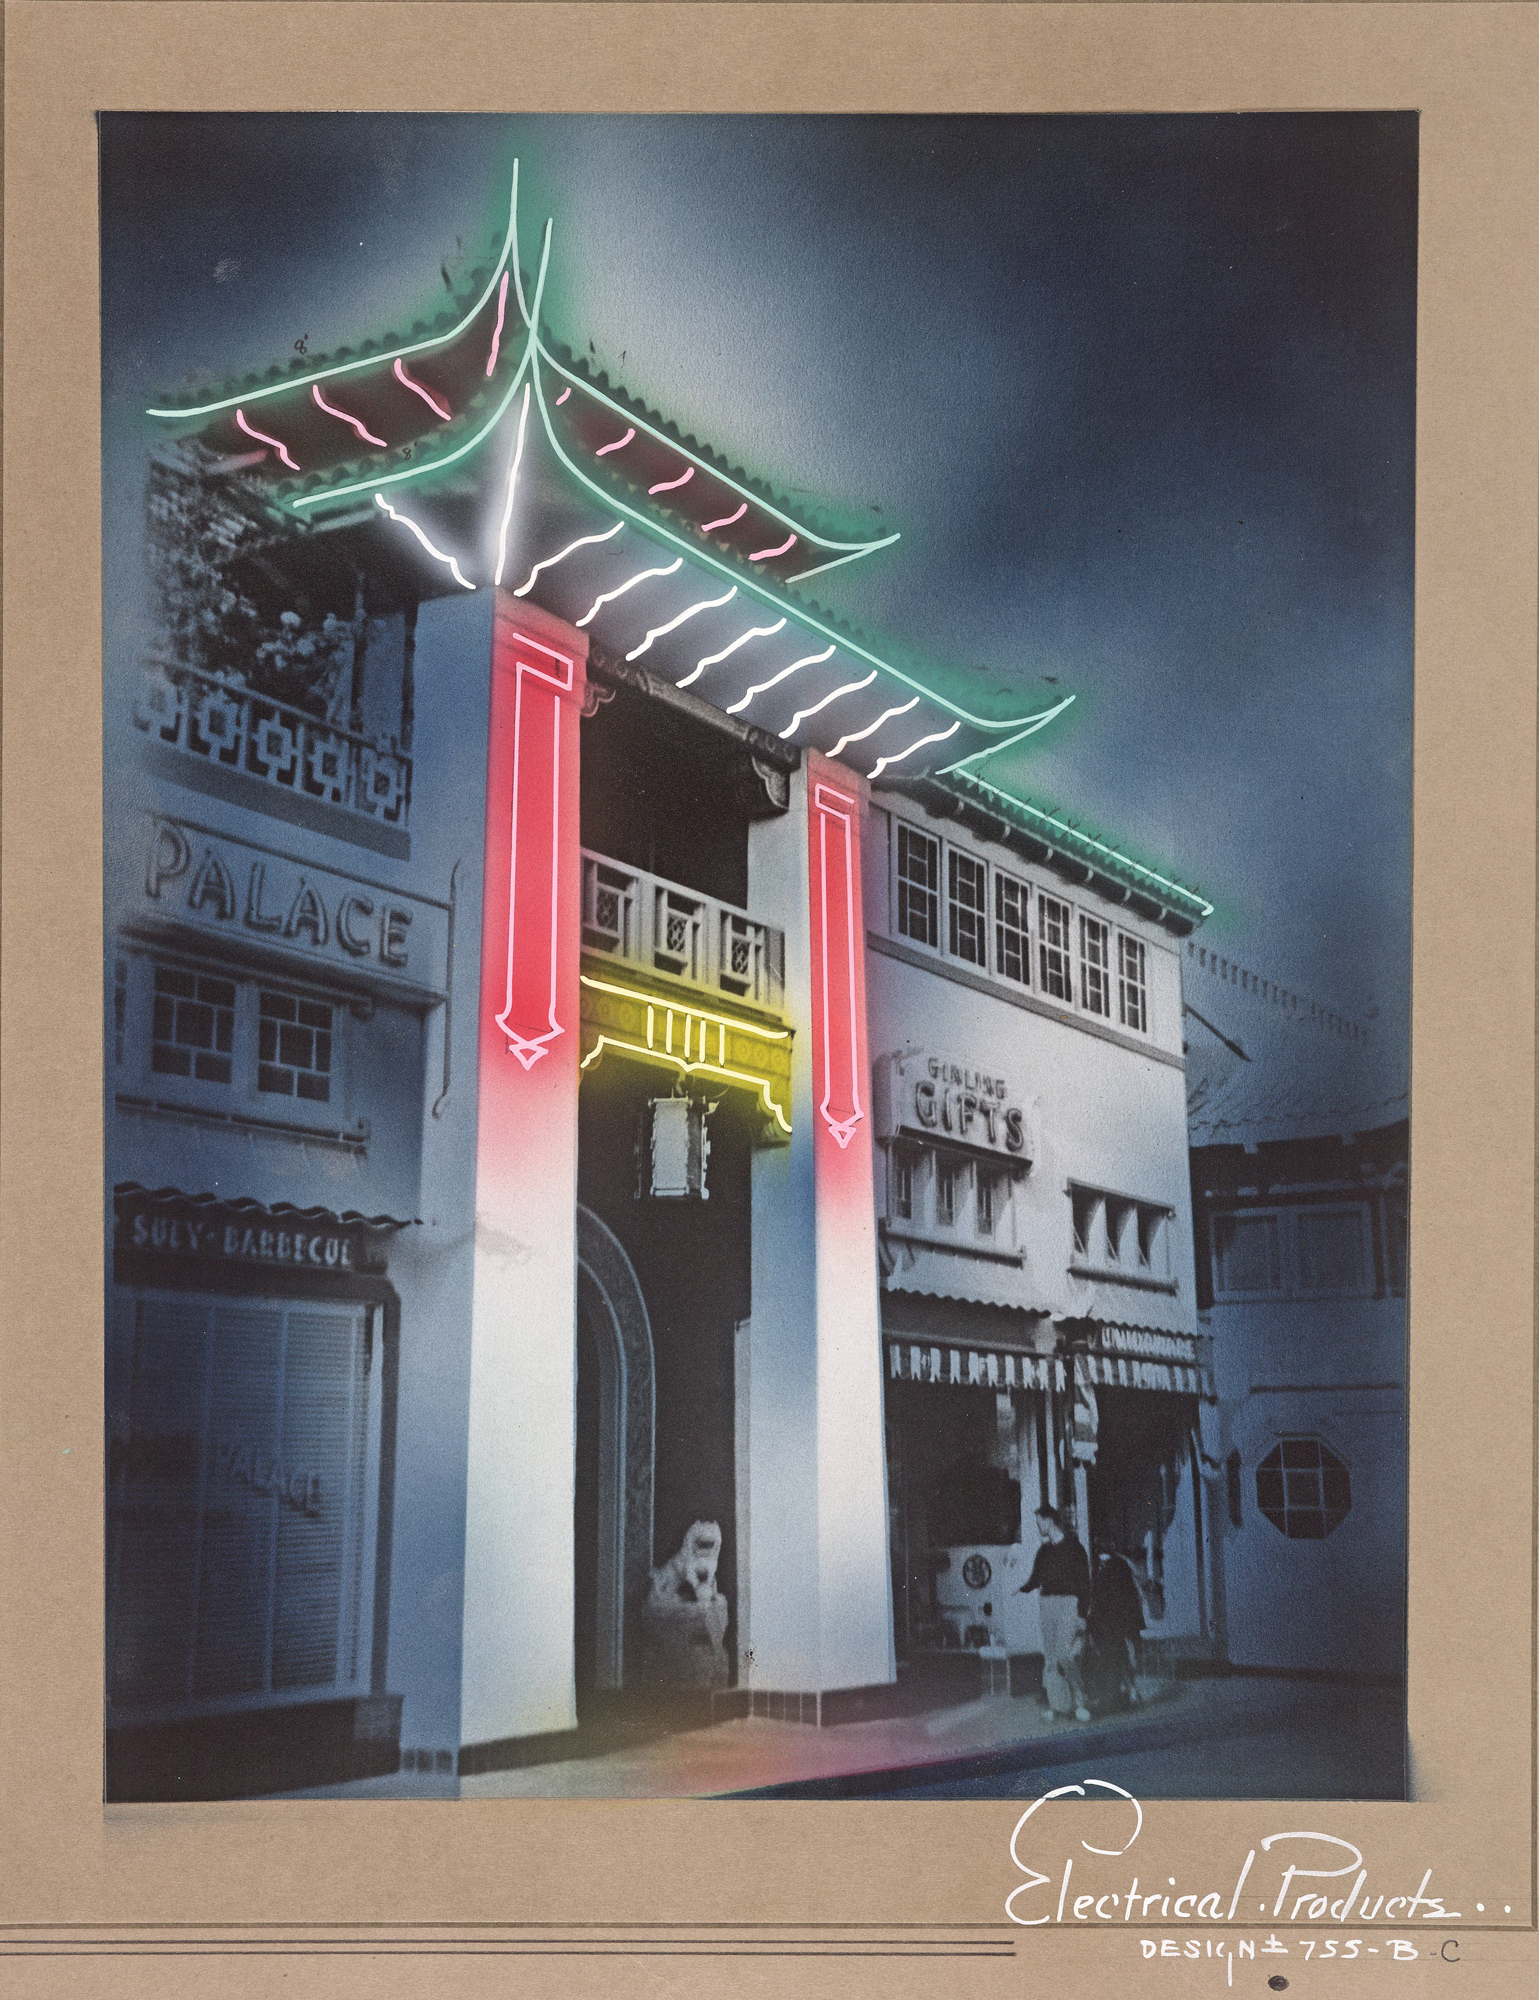 Neon lighting concept for New Chinatown by Electrical Products Corp. (c. 1936)